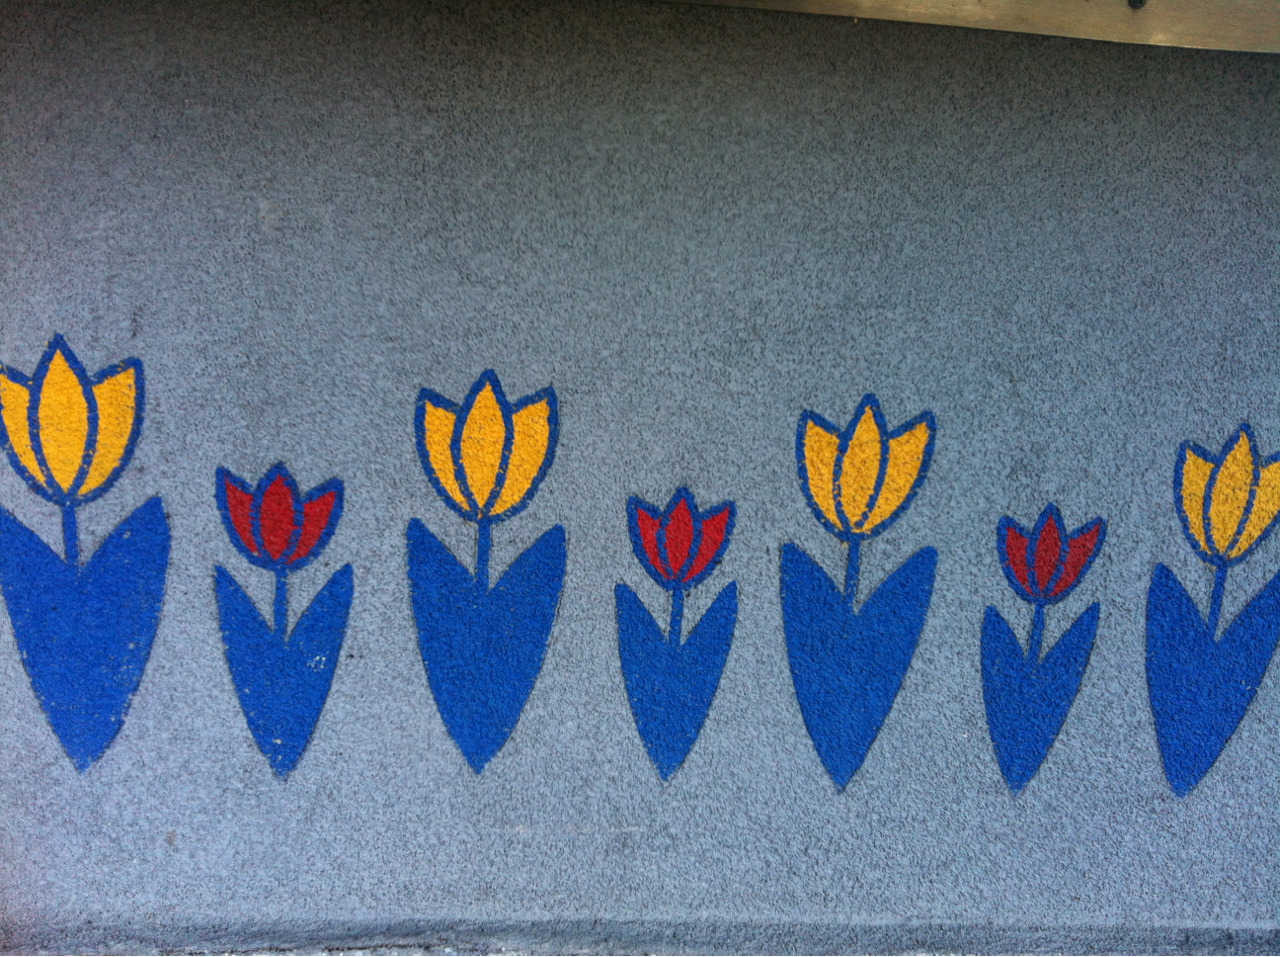 POP QUIZ: Name these tulips! Where can they be spotted in Humboldt?